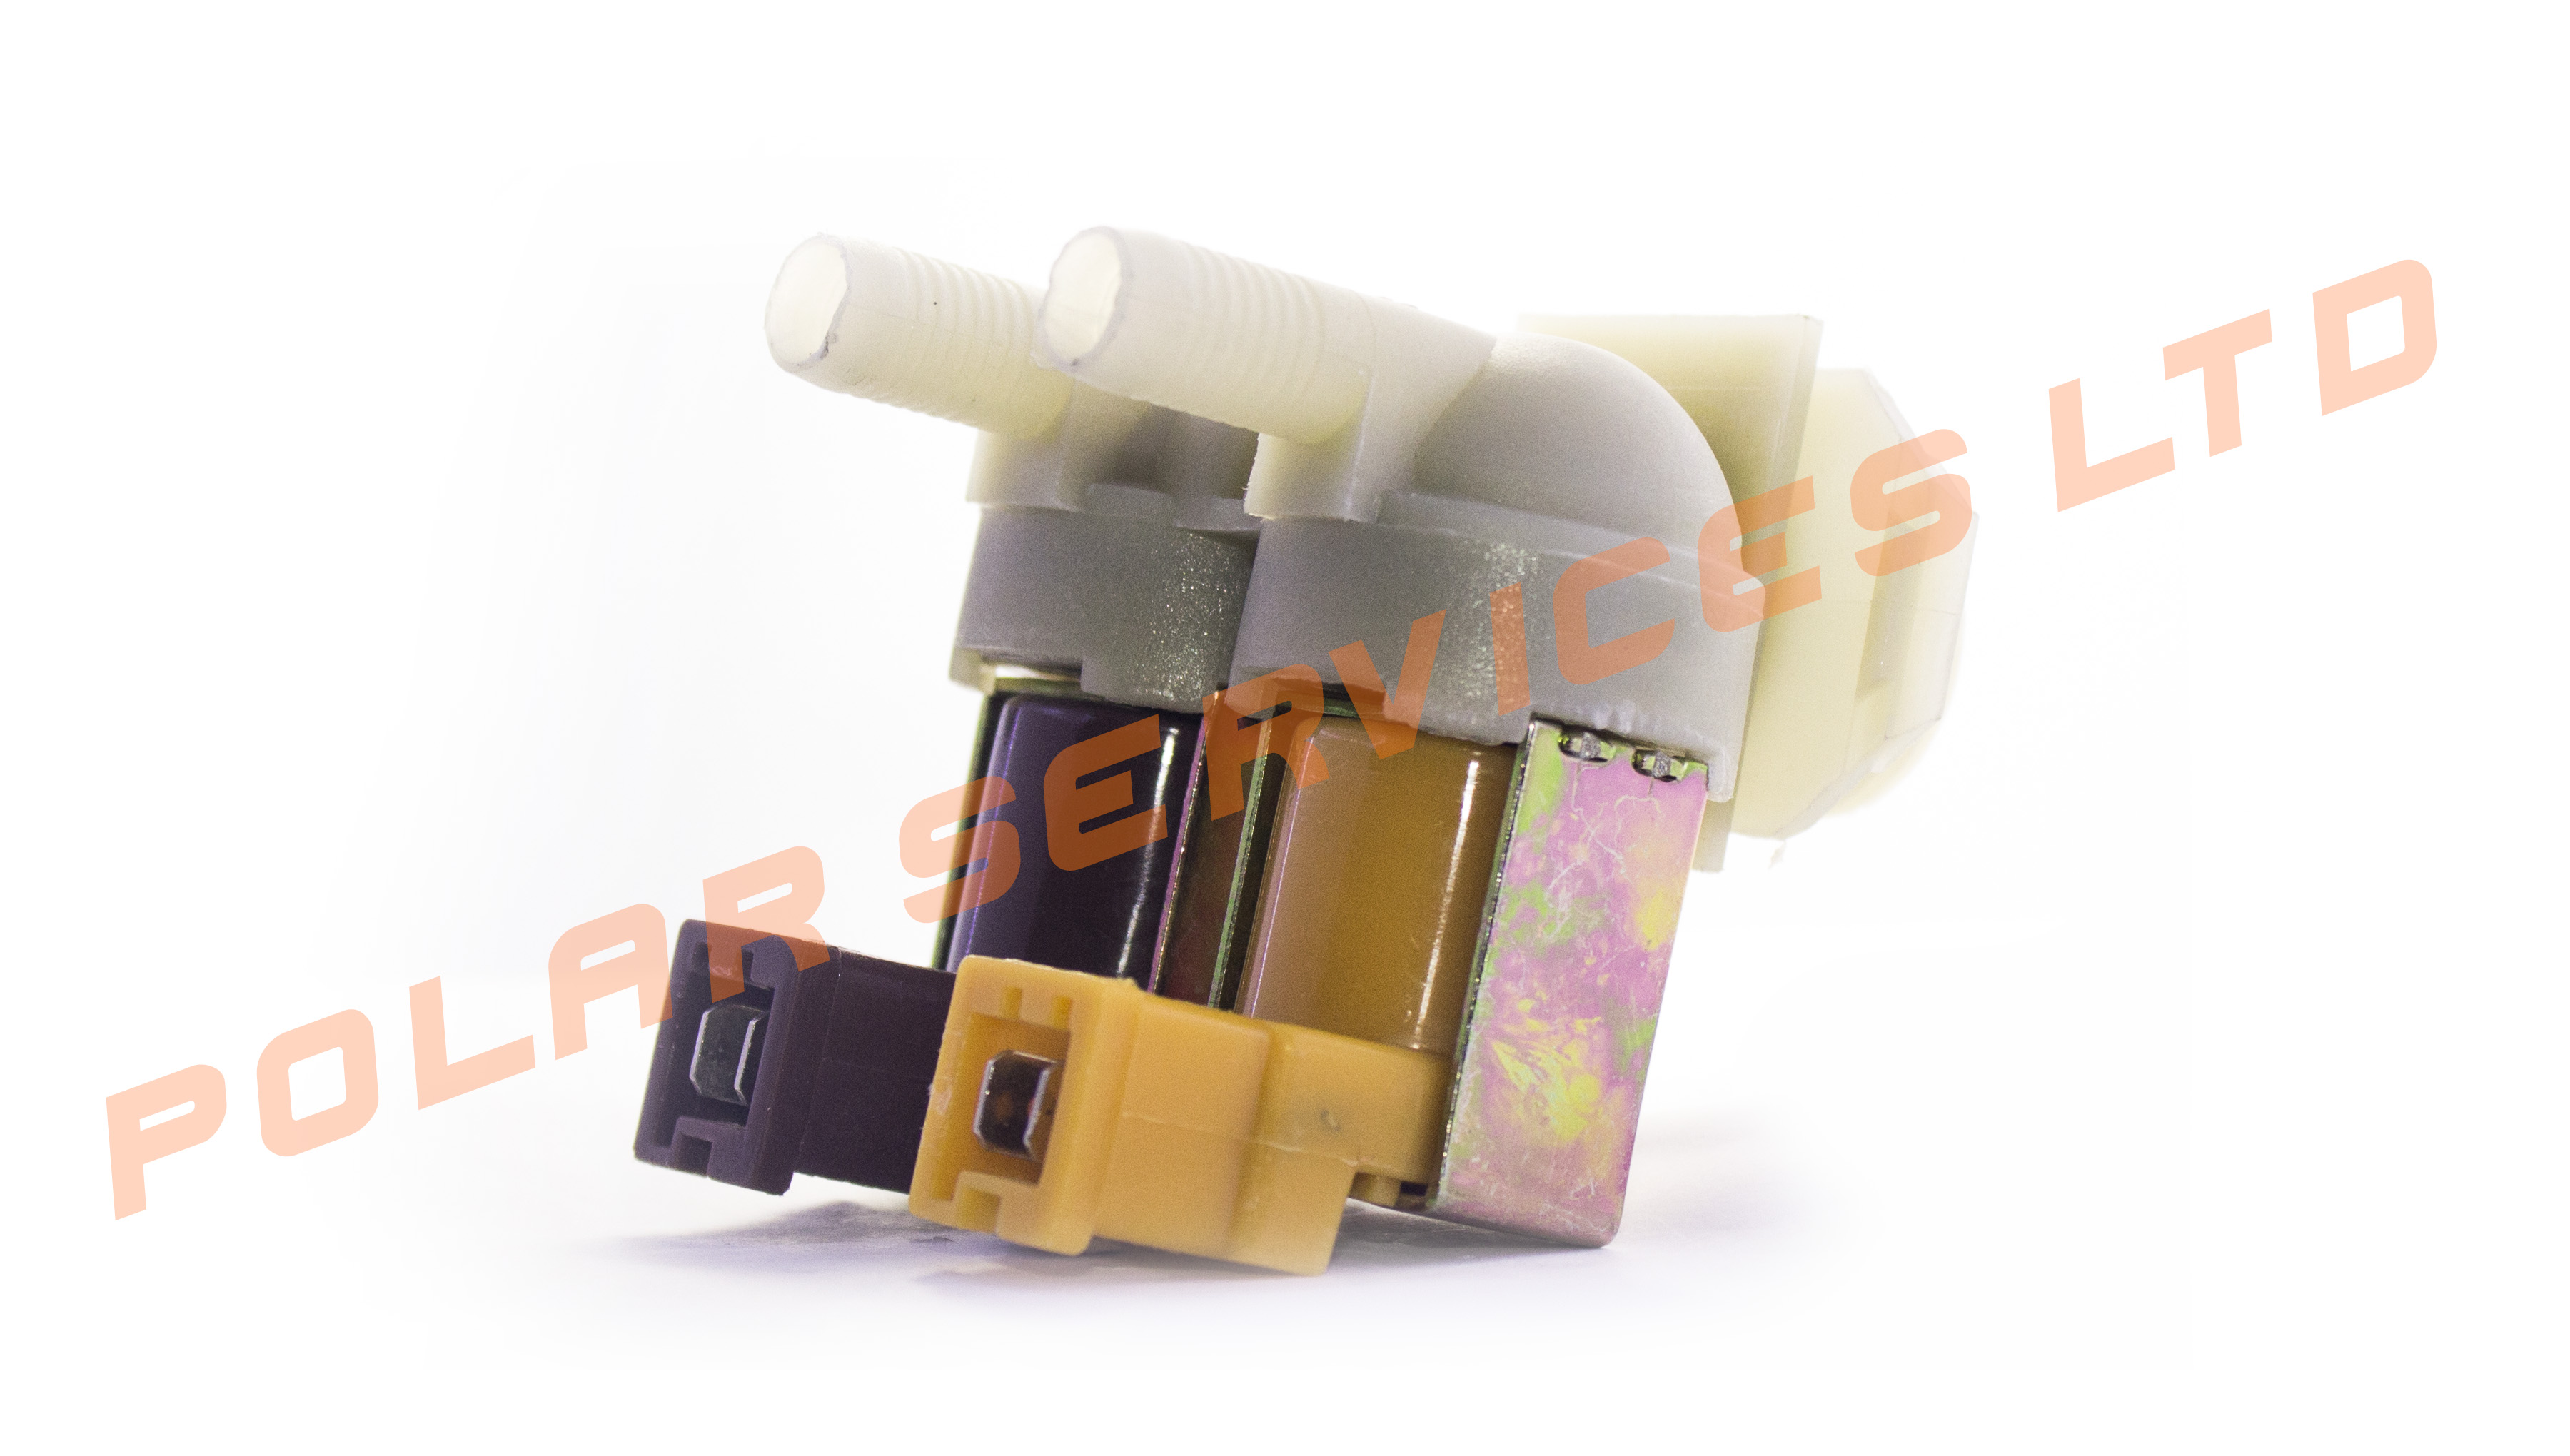 WASHING MACHINE SOLENOID VALVE TWIN 10.5MM BOSCH Malta, 								Washing Machine Malta, Polar Services LTD Malta Malta